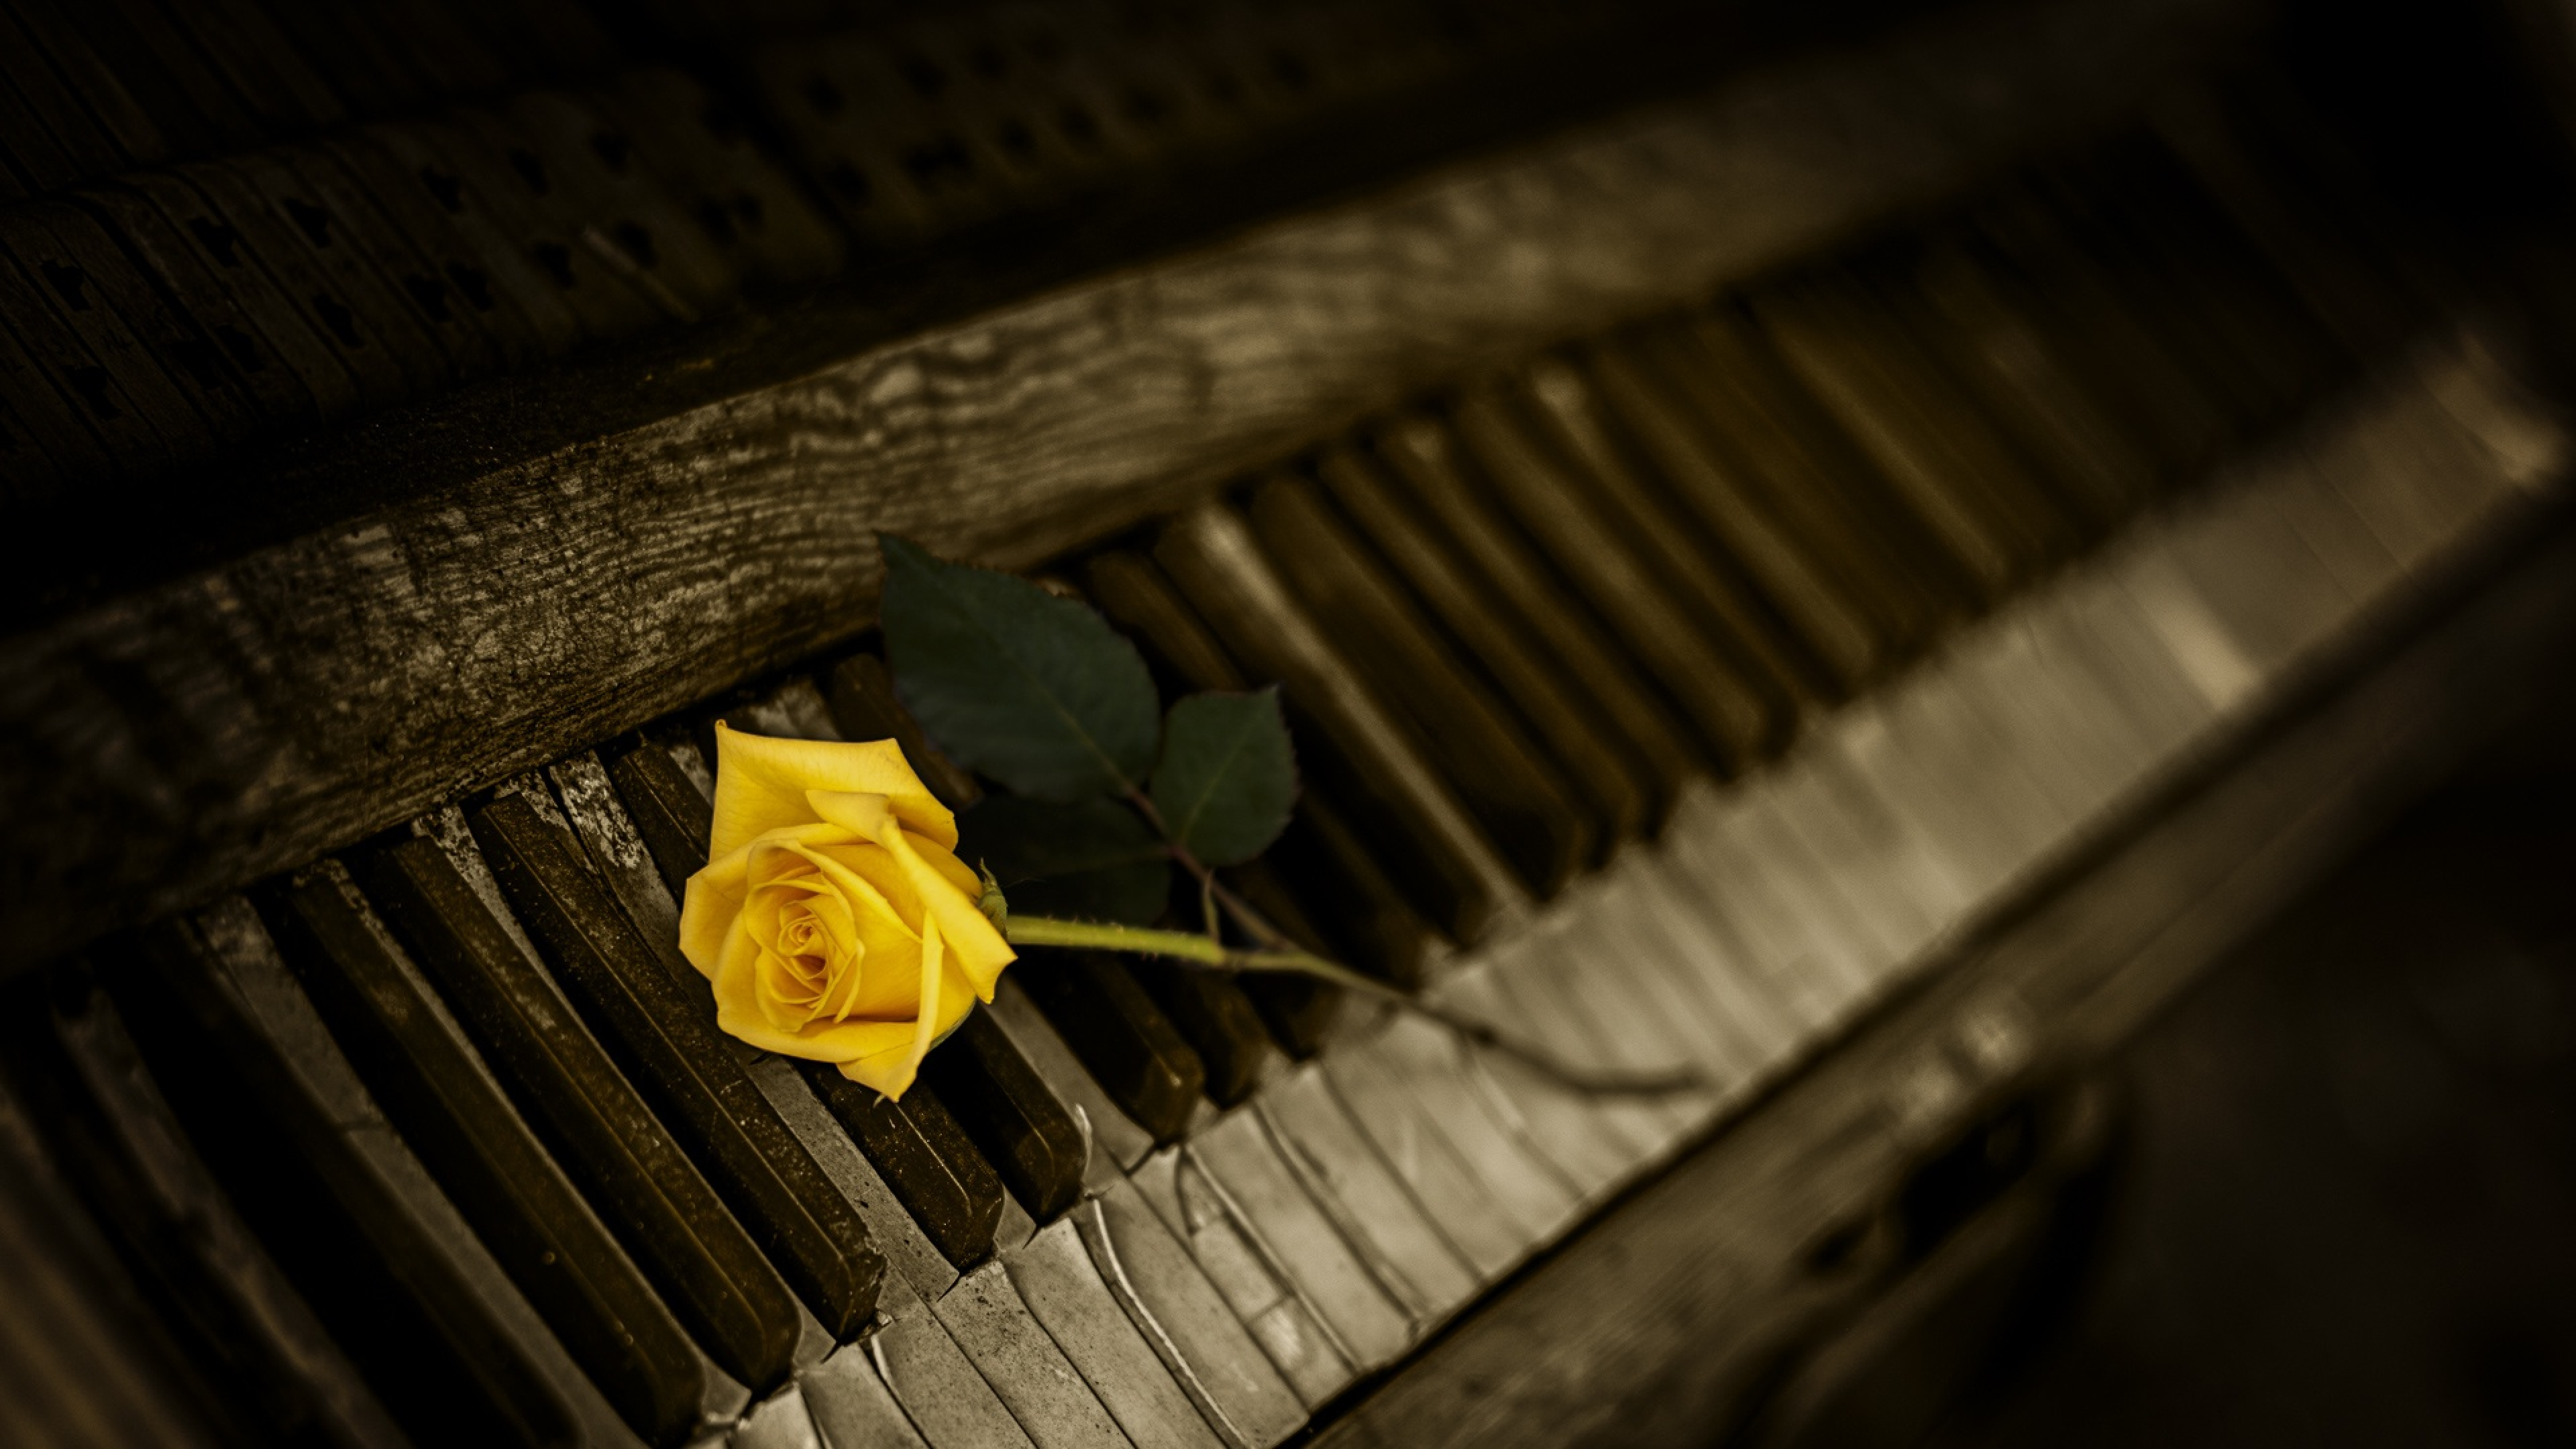 3840x2160 Piano Rose Keys 4k Wallpaper Hd Flowers 4k Wallpapers Images Photos And Background